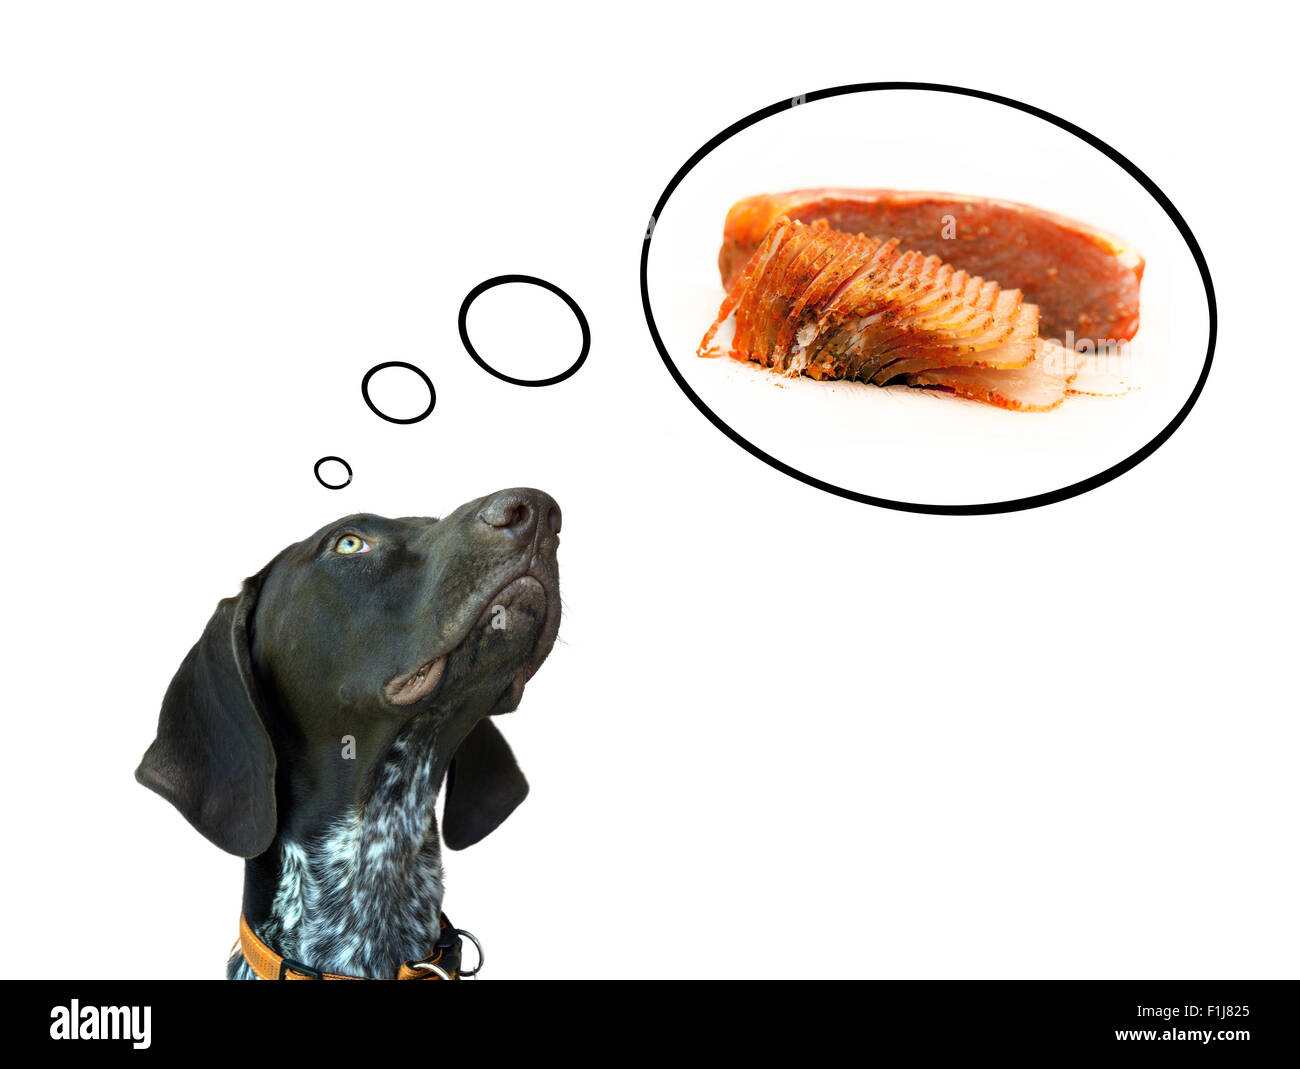 Conceptual image of german short hair pointer dreaming about delicious surlion - Stock Image